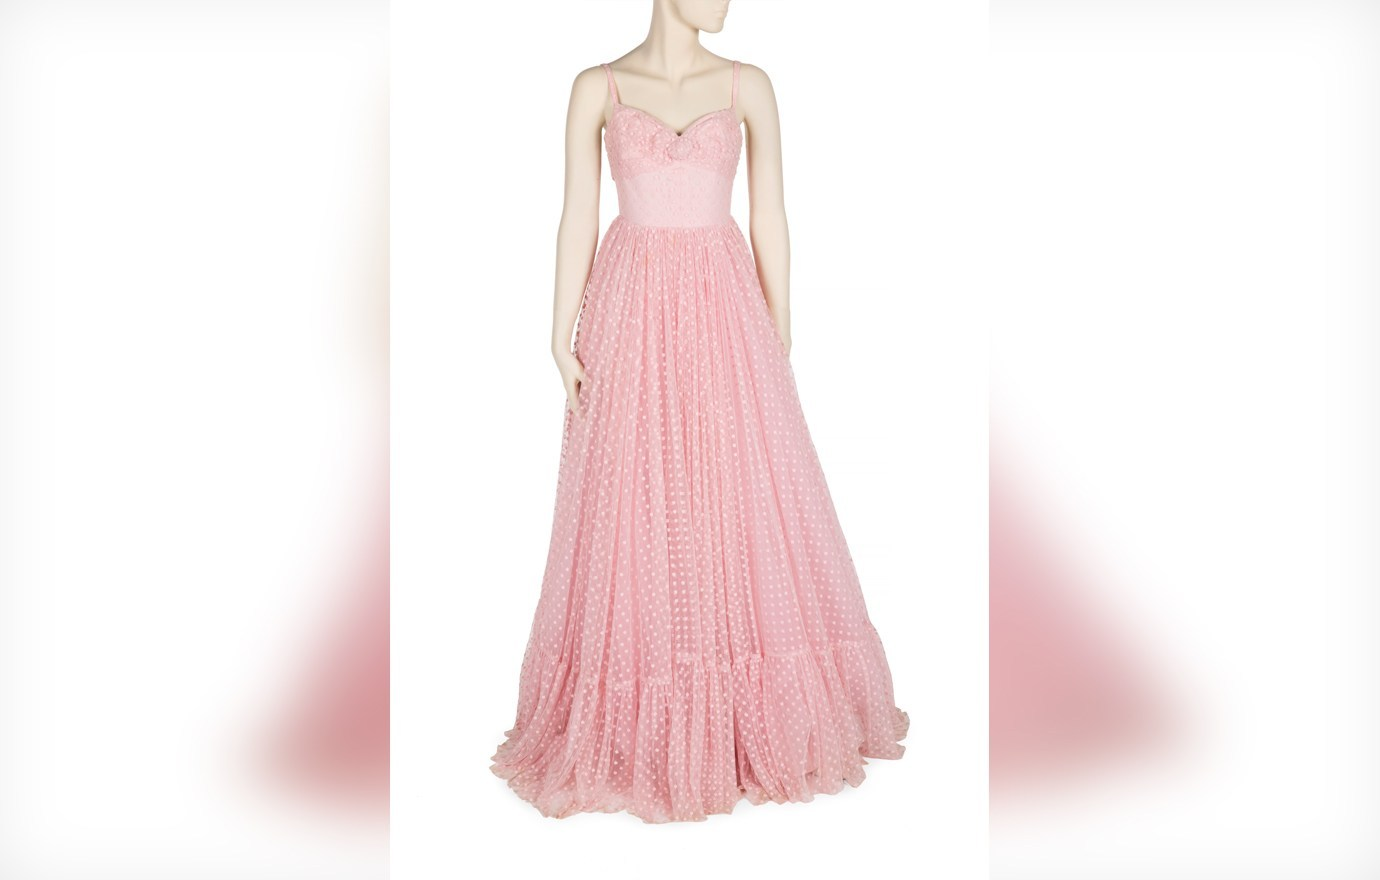 Strapless pink lace gown